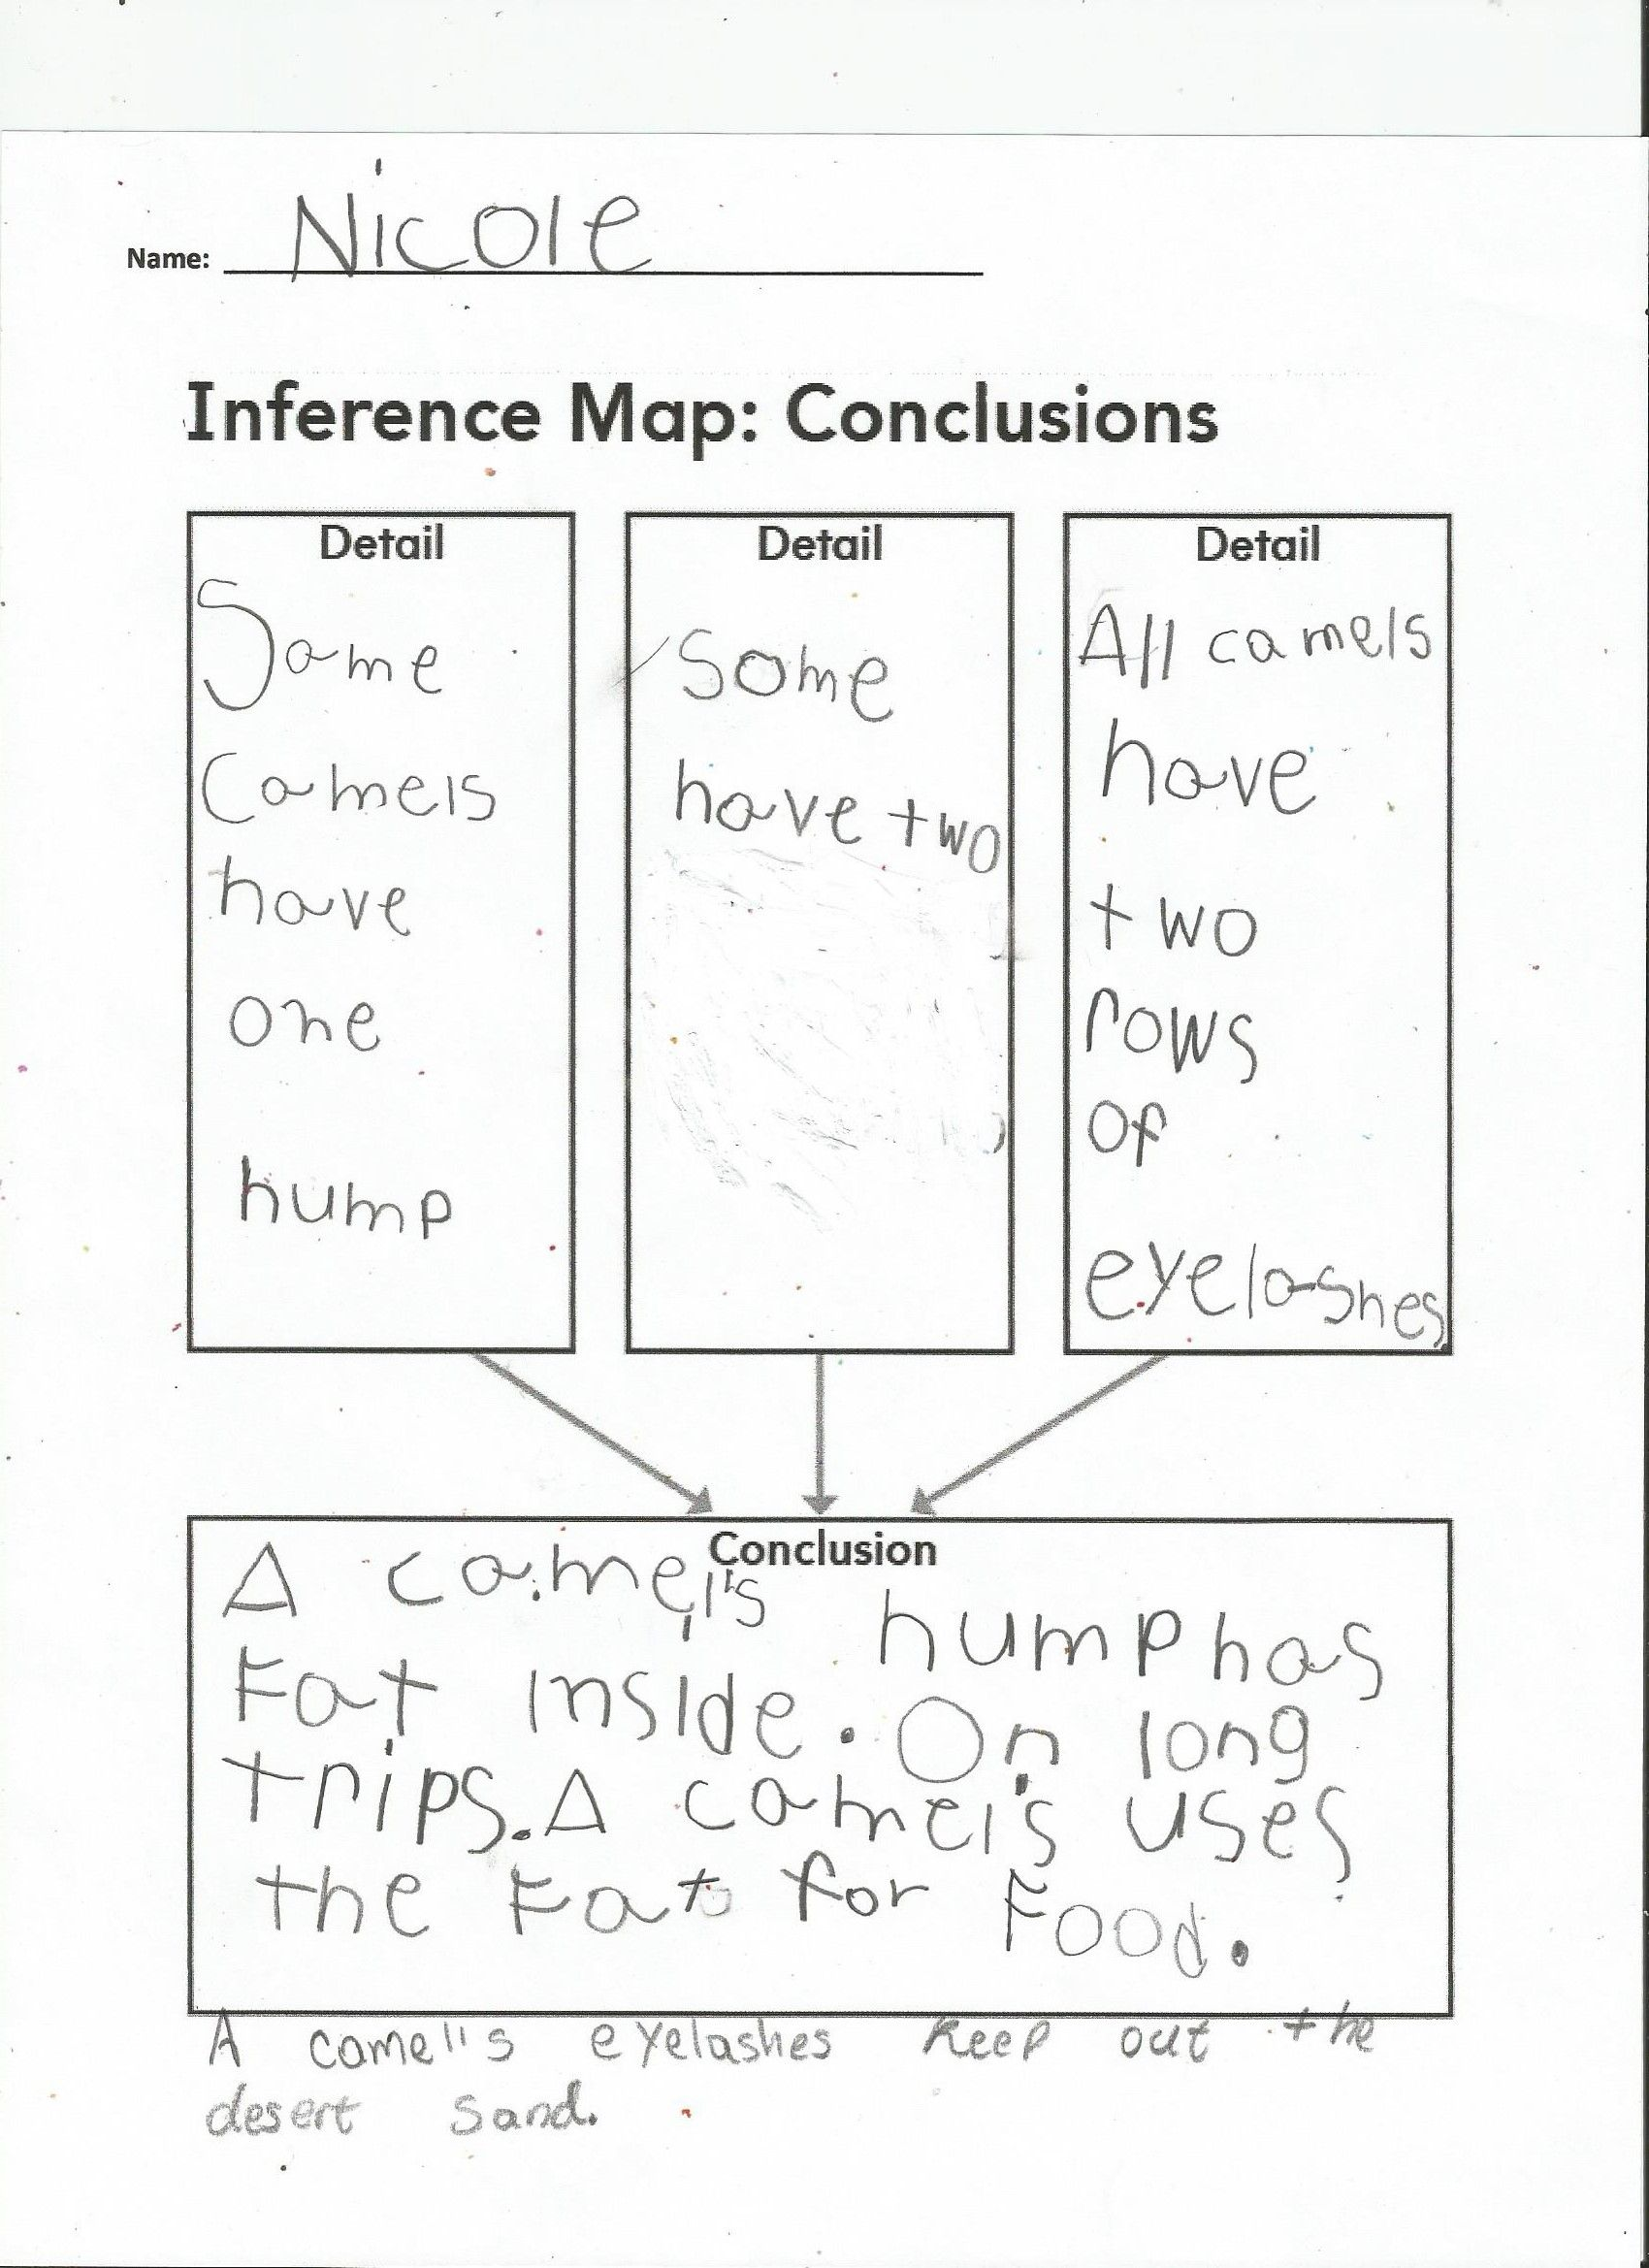 Amazing Animals Inference Map Conclusions 2nd Grade Worksheets Math Addition Worksheets Drawing Conclusions